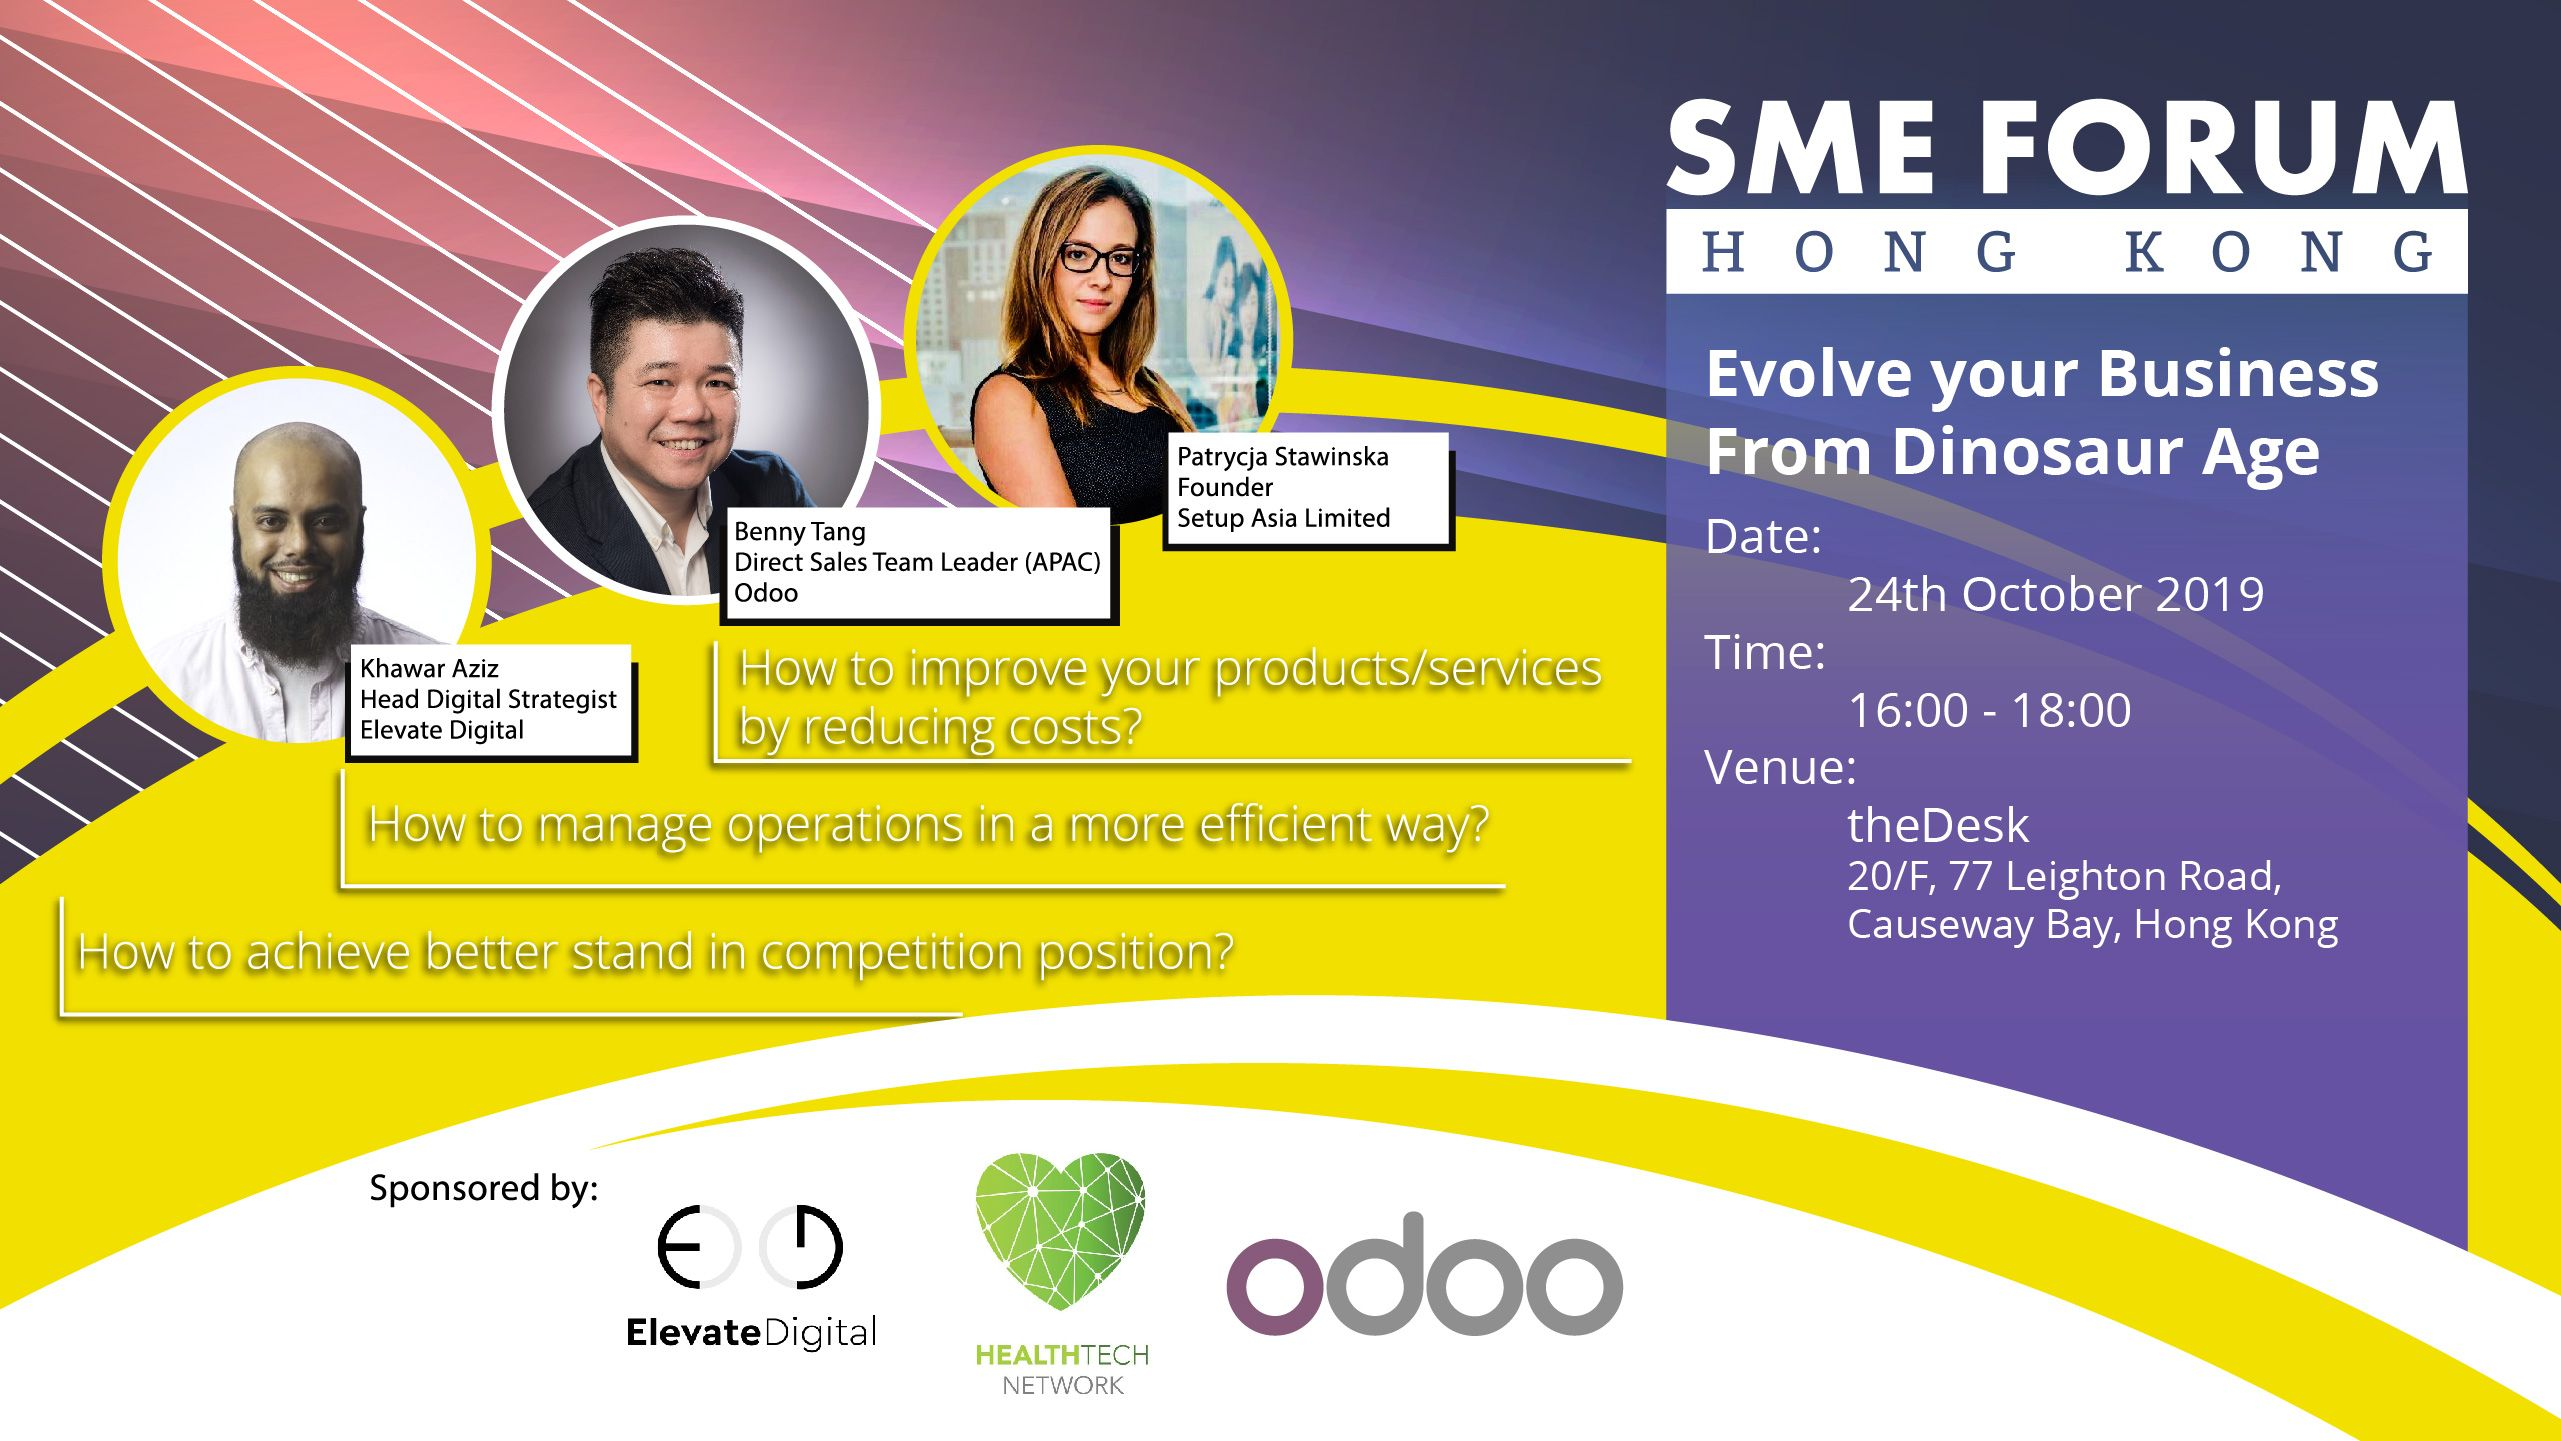 Evolve Your Business | Odoo SME Forum